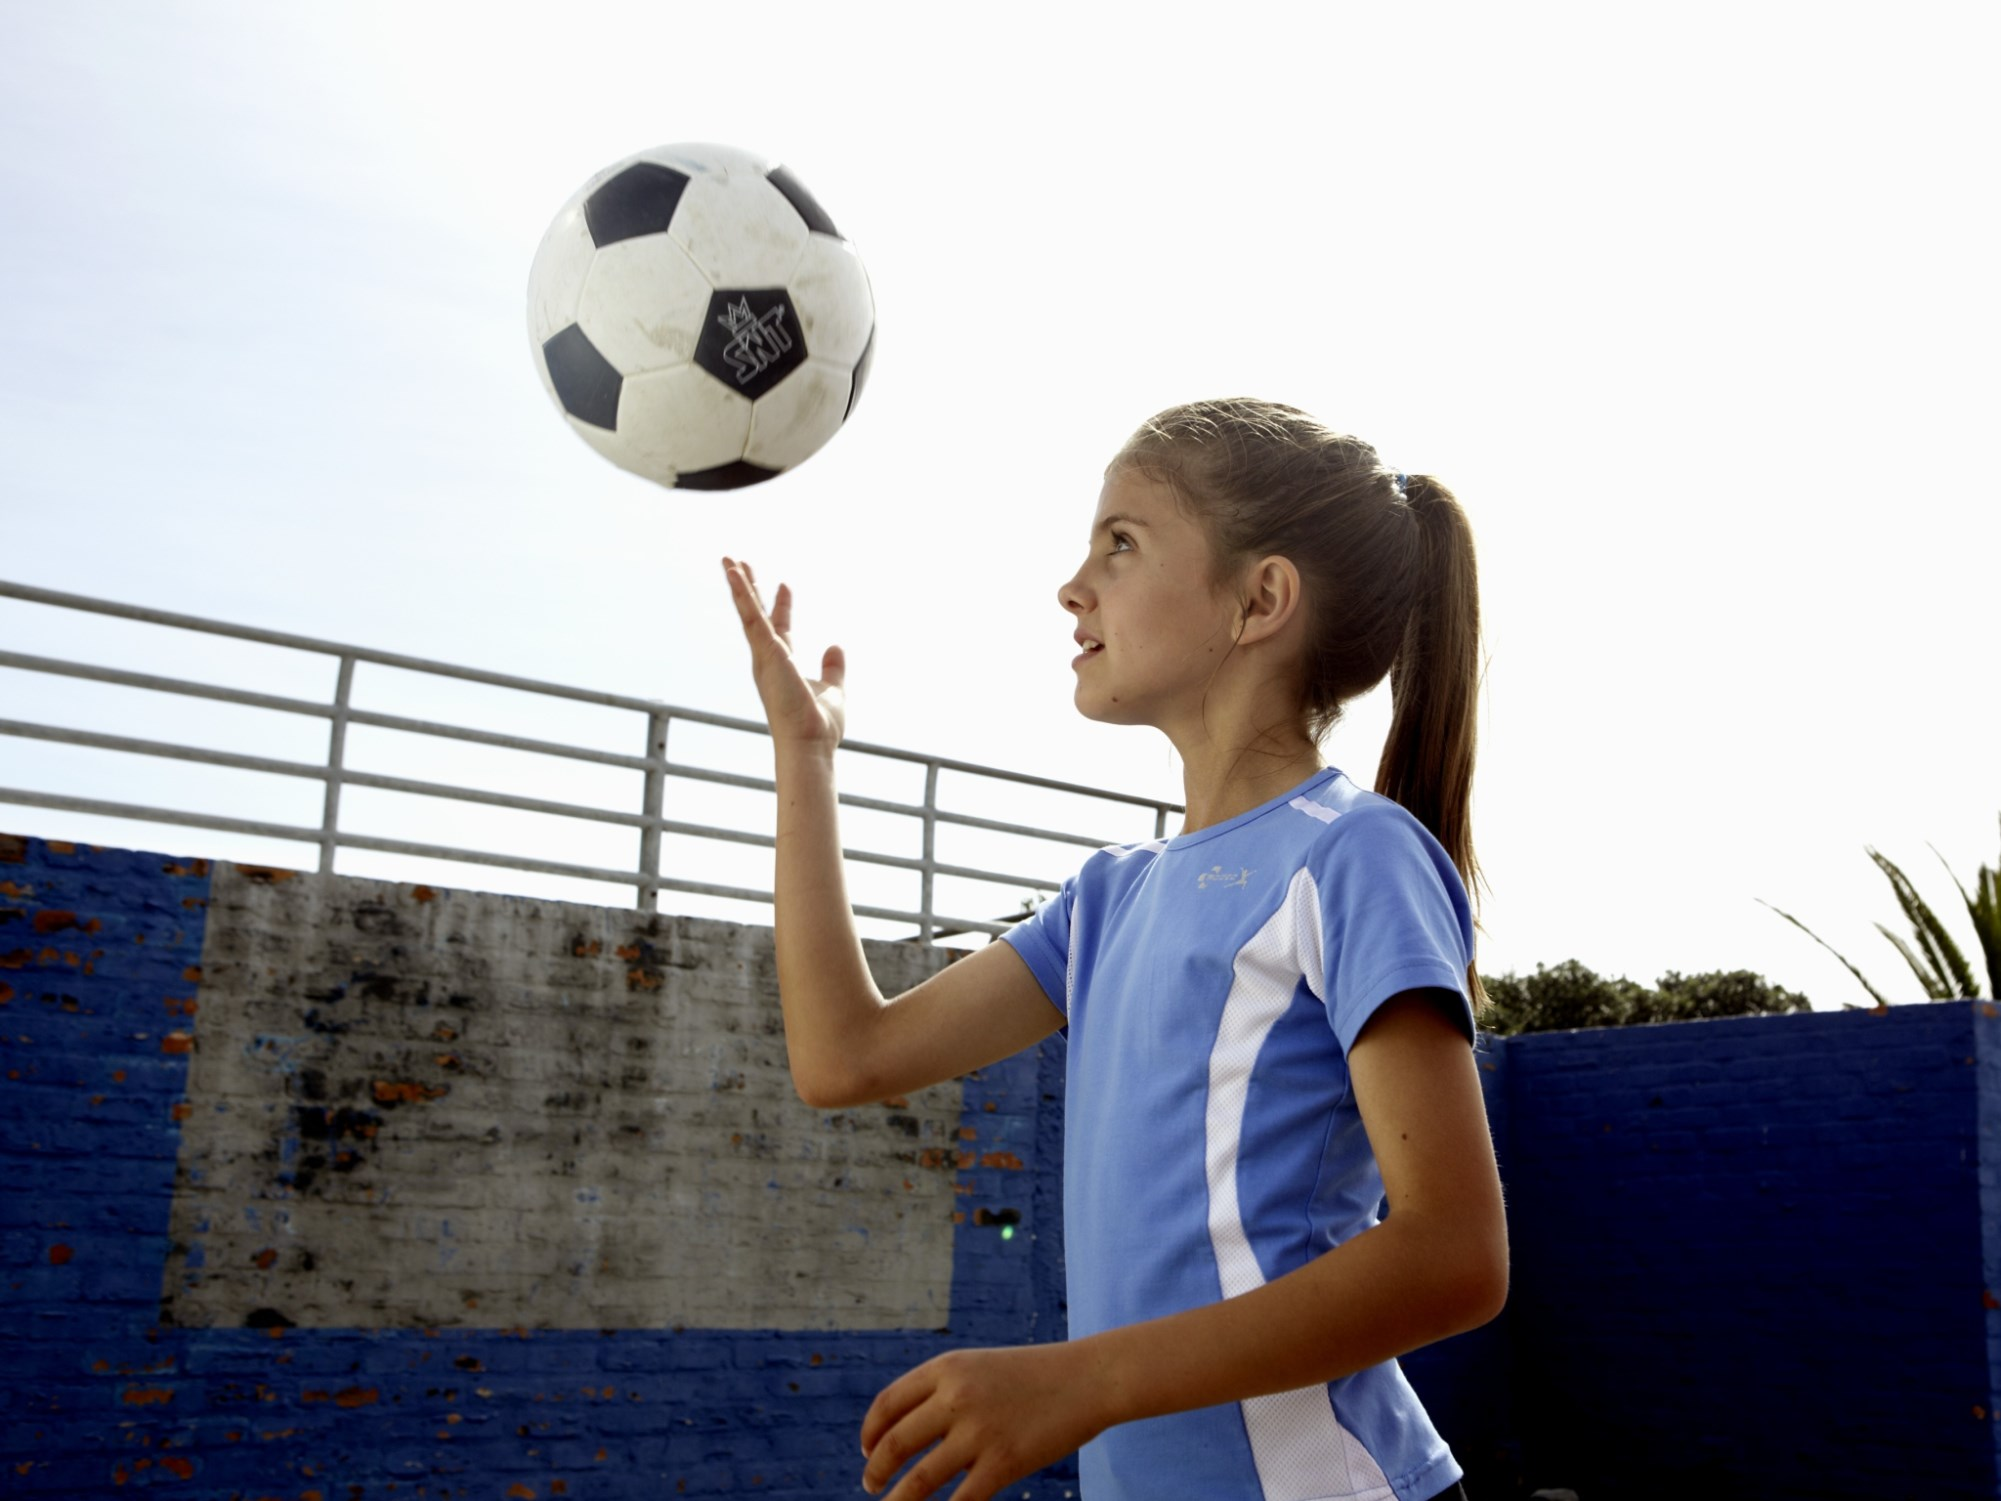 Video: Are Concussions A Real Concern In Youth Soccer?